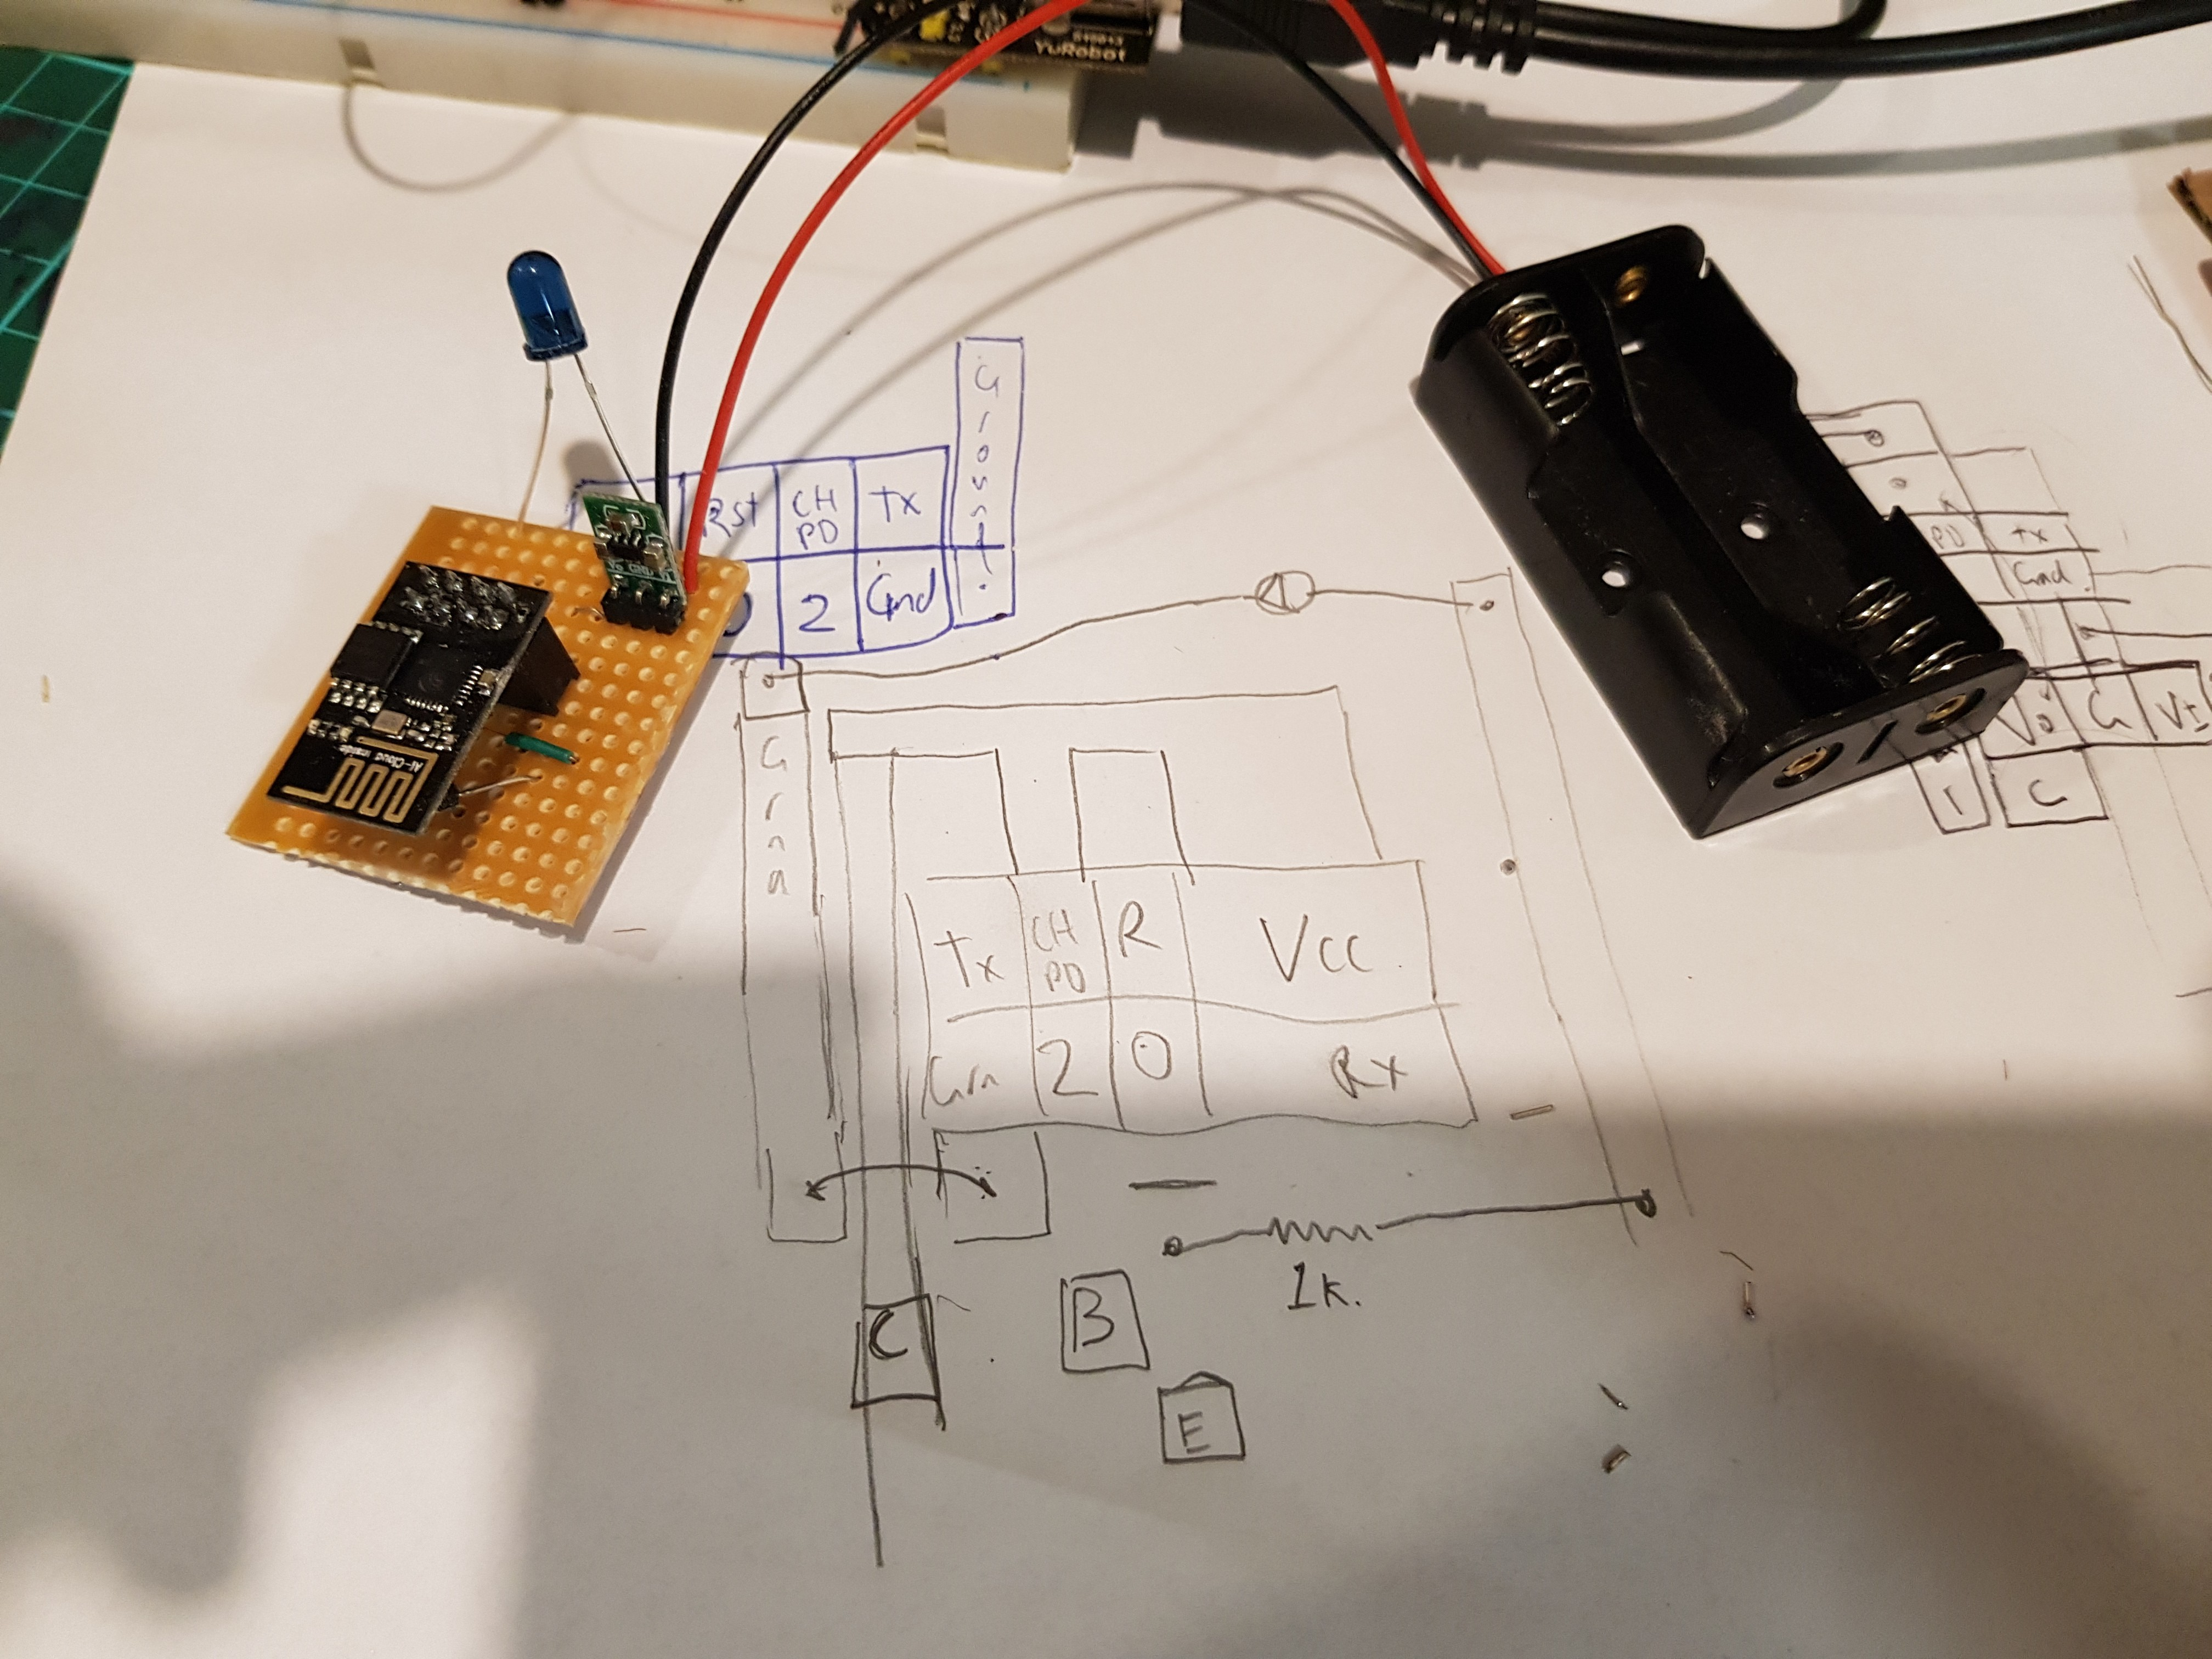 Esp8266 Mqtt Infrared Aircon Control Build A Transistor Circuit Board For Controlling Air Conditioner This Version Uses Switching To Drive The Led But Cant Use Esp Sleep Function Previous One As It Doesnt Expose Right Pins